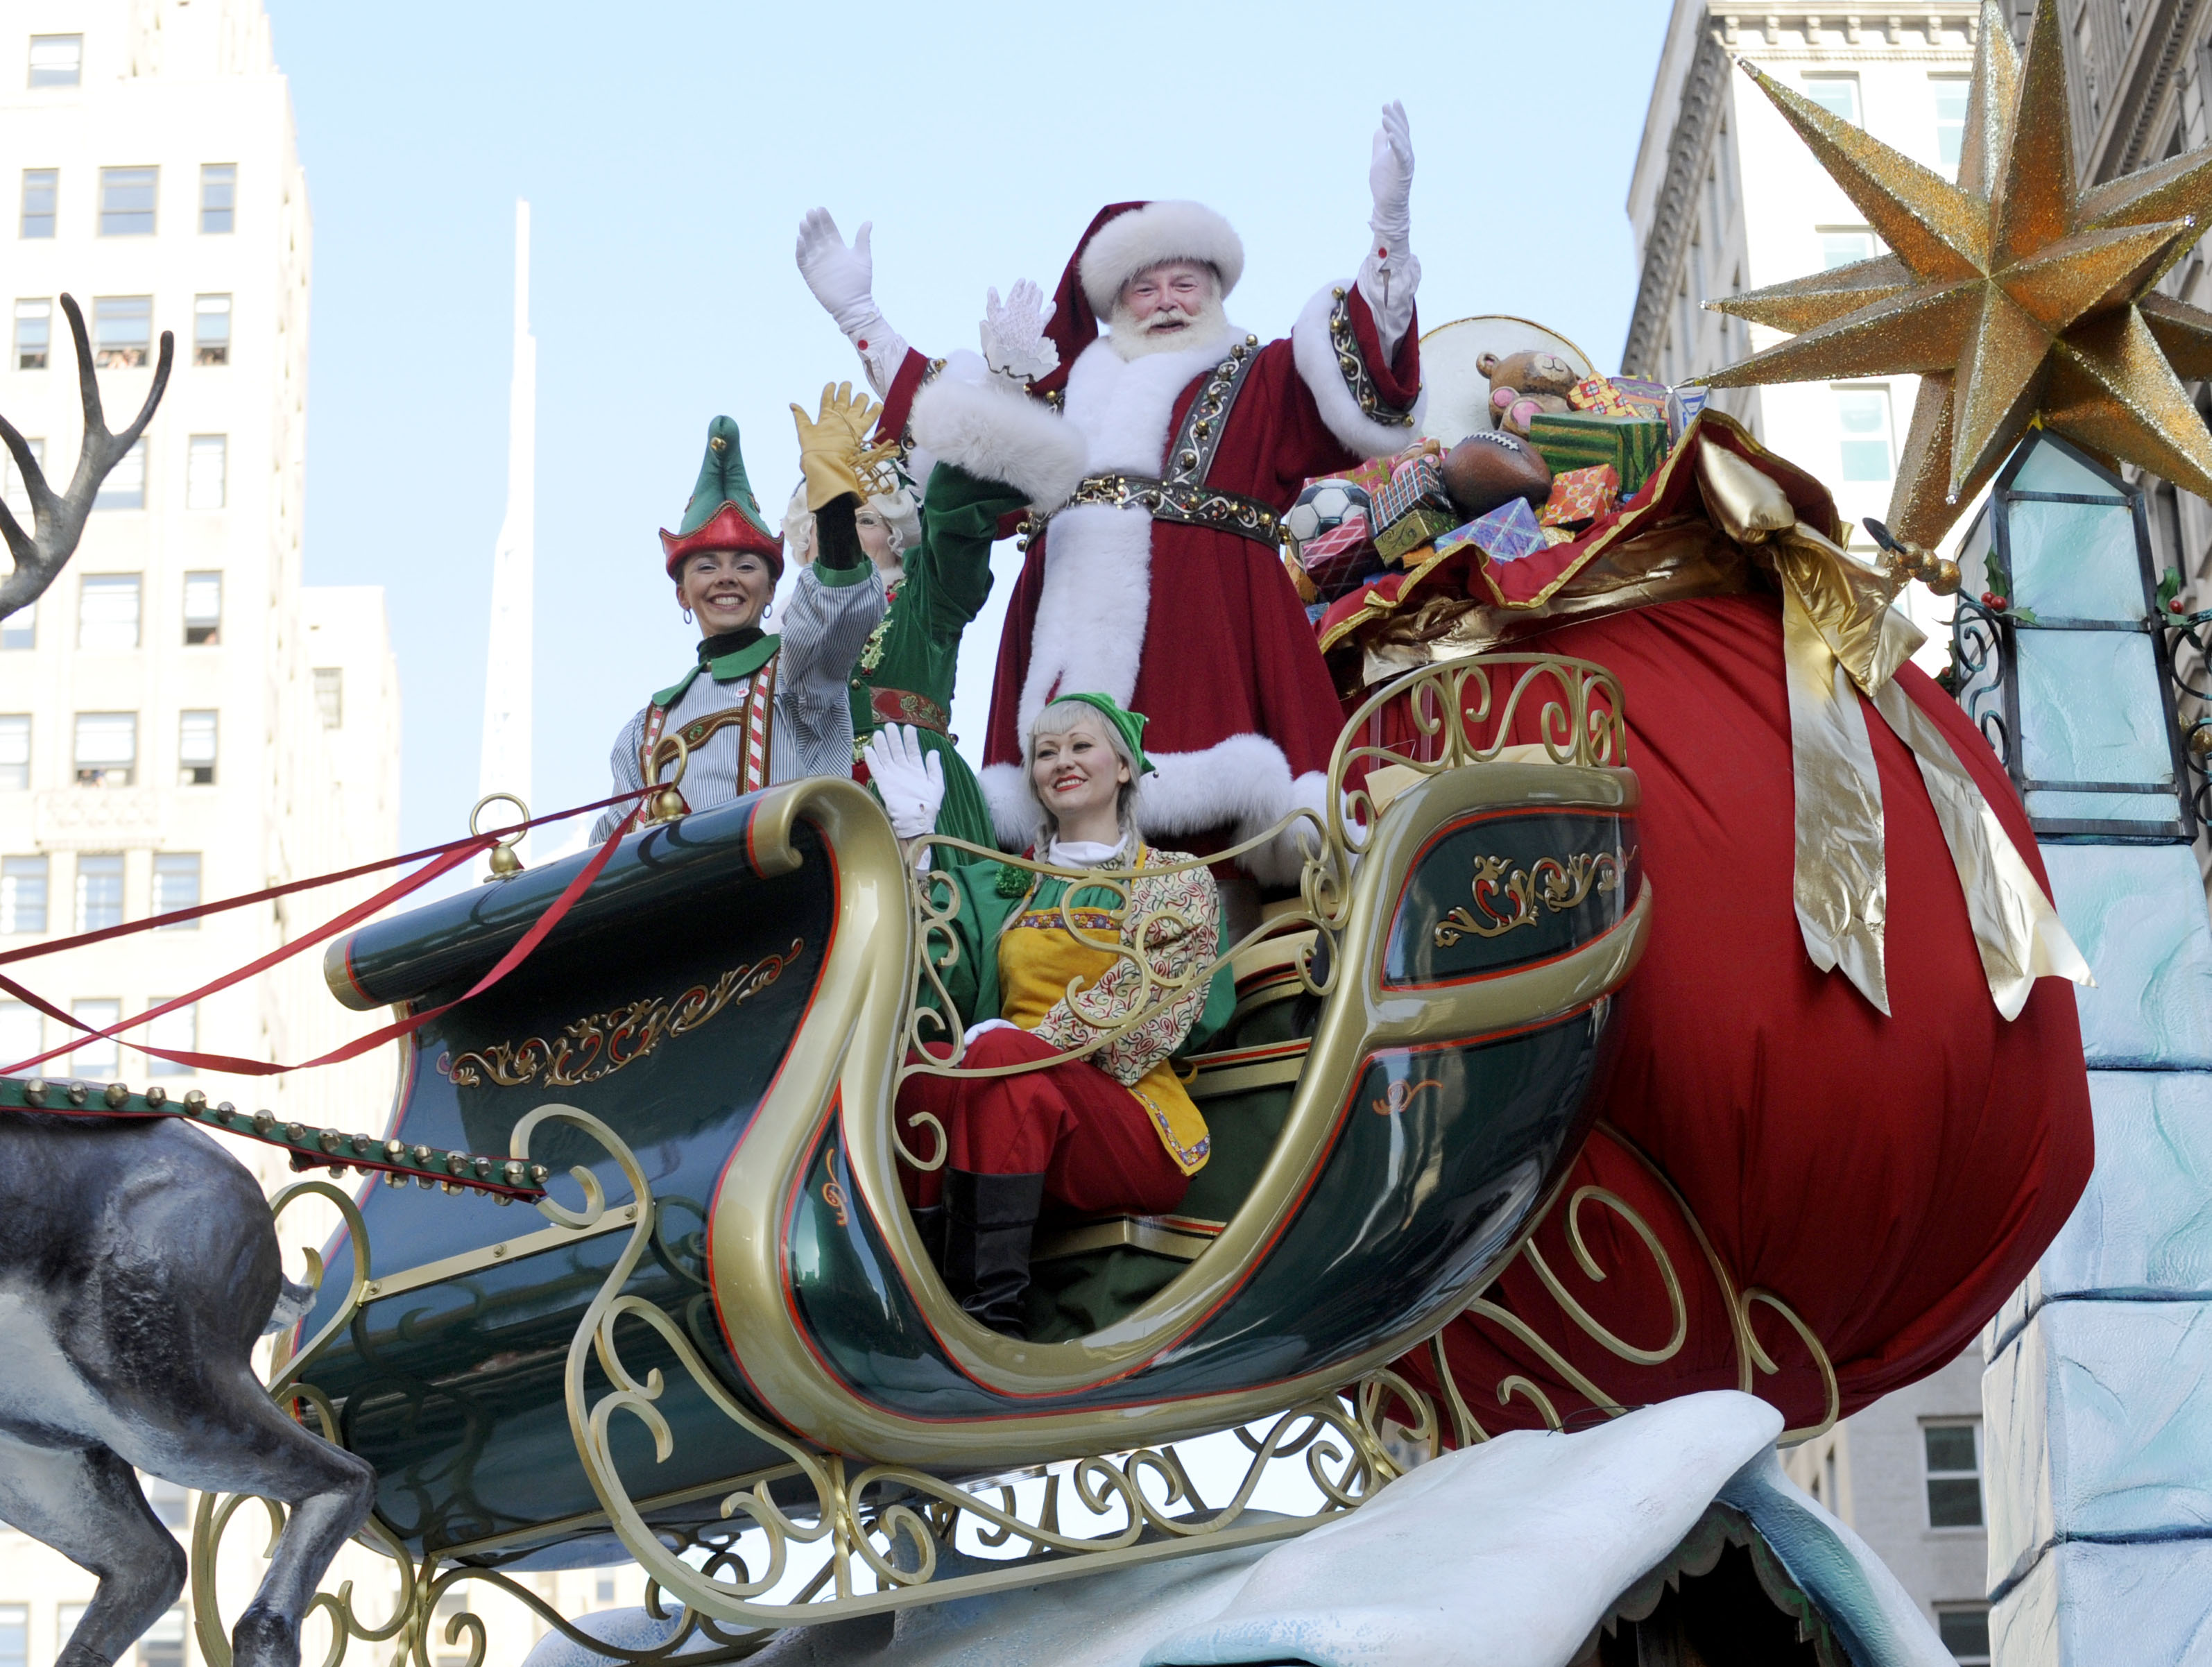 Thanksgiving Parade Brings Cheer To Storm Hit NYC The Blade